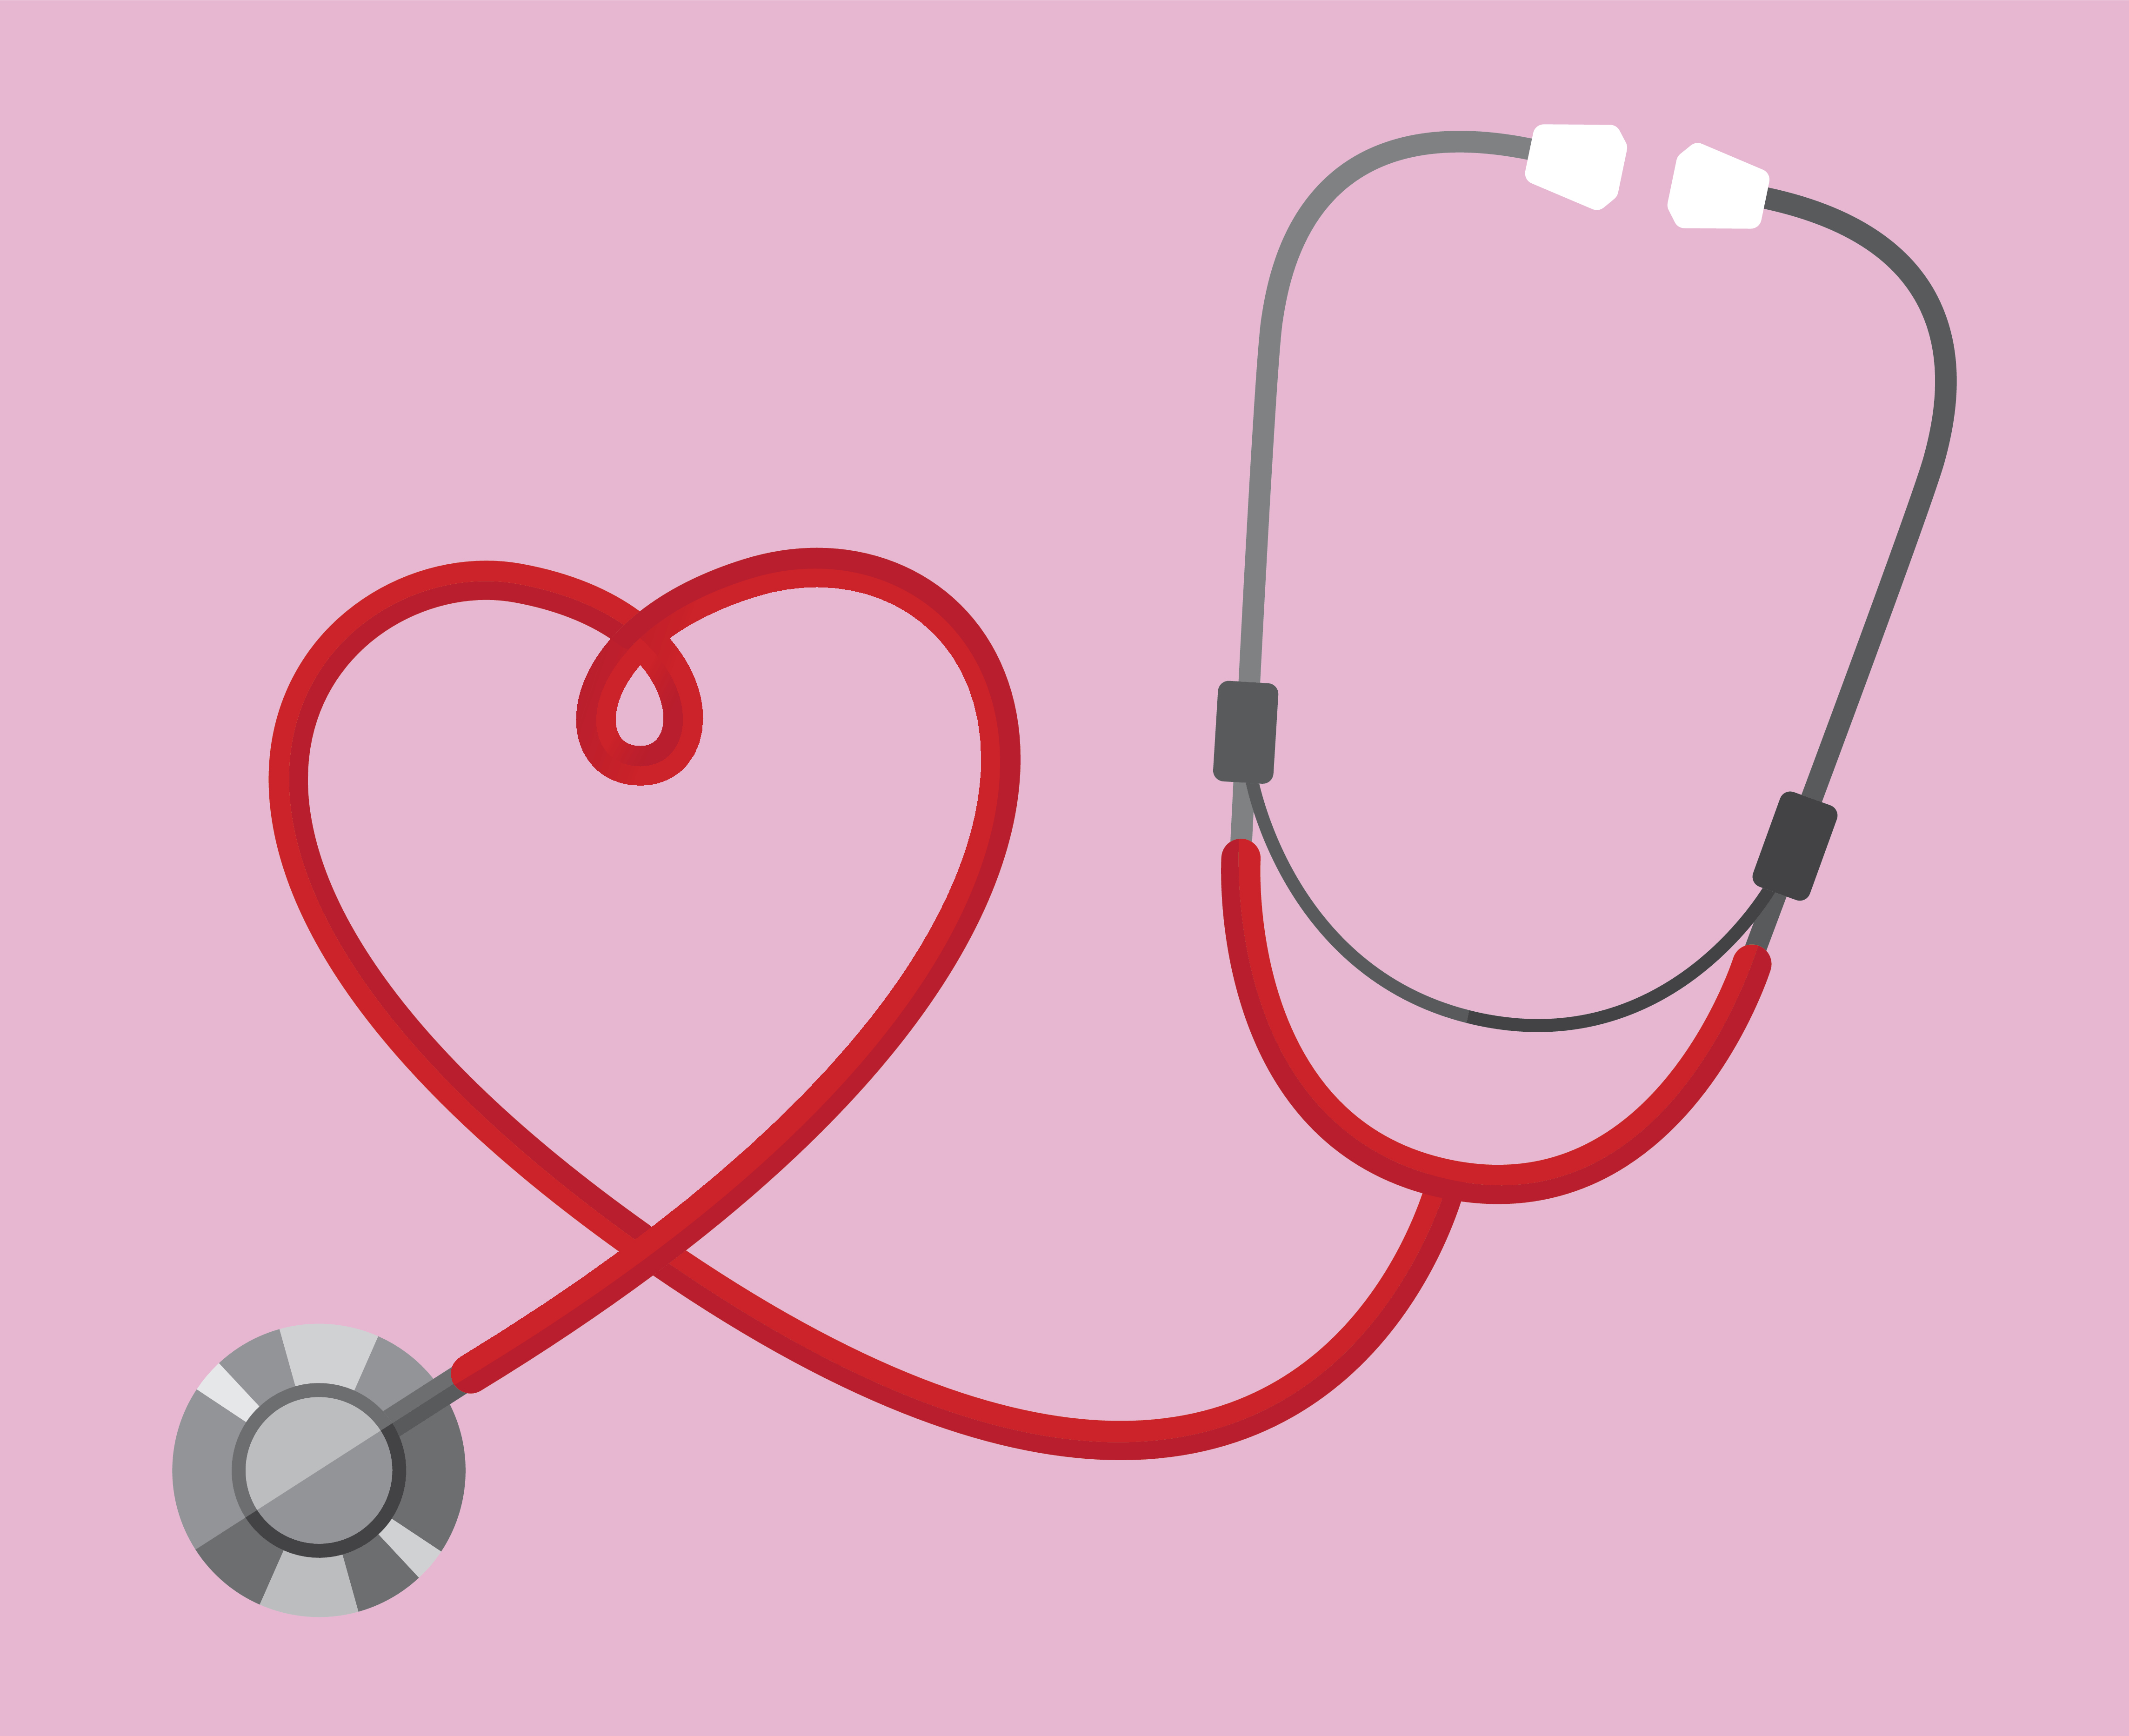 Vector illustration of a stethoscope twisted into the shape of a heart on a pink background.